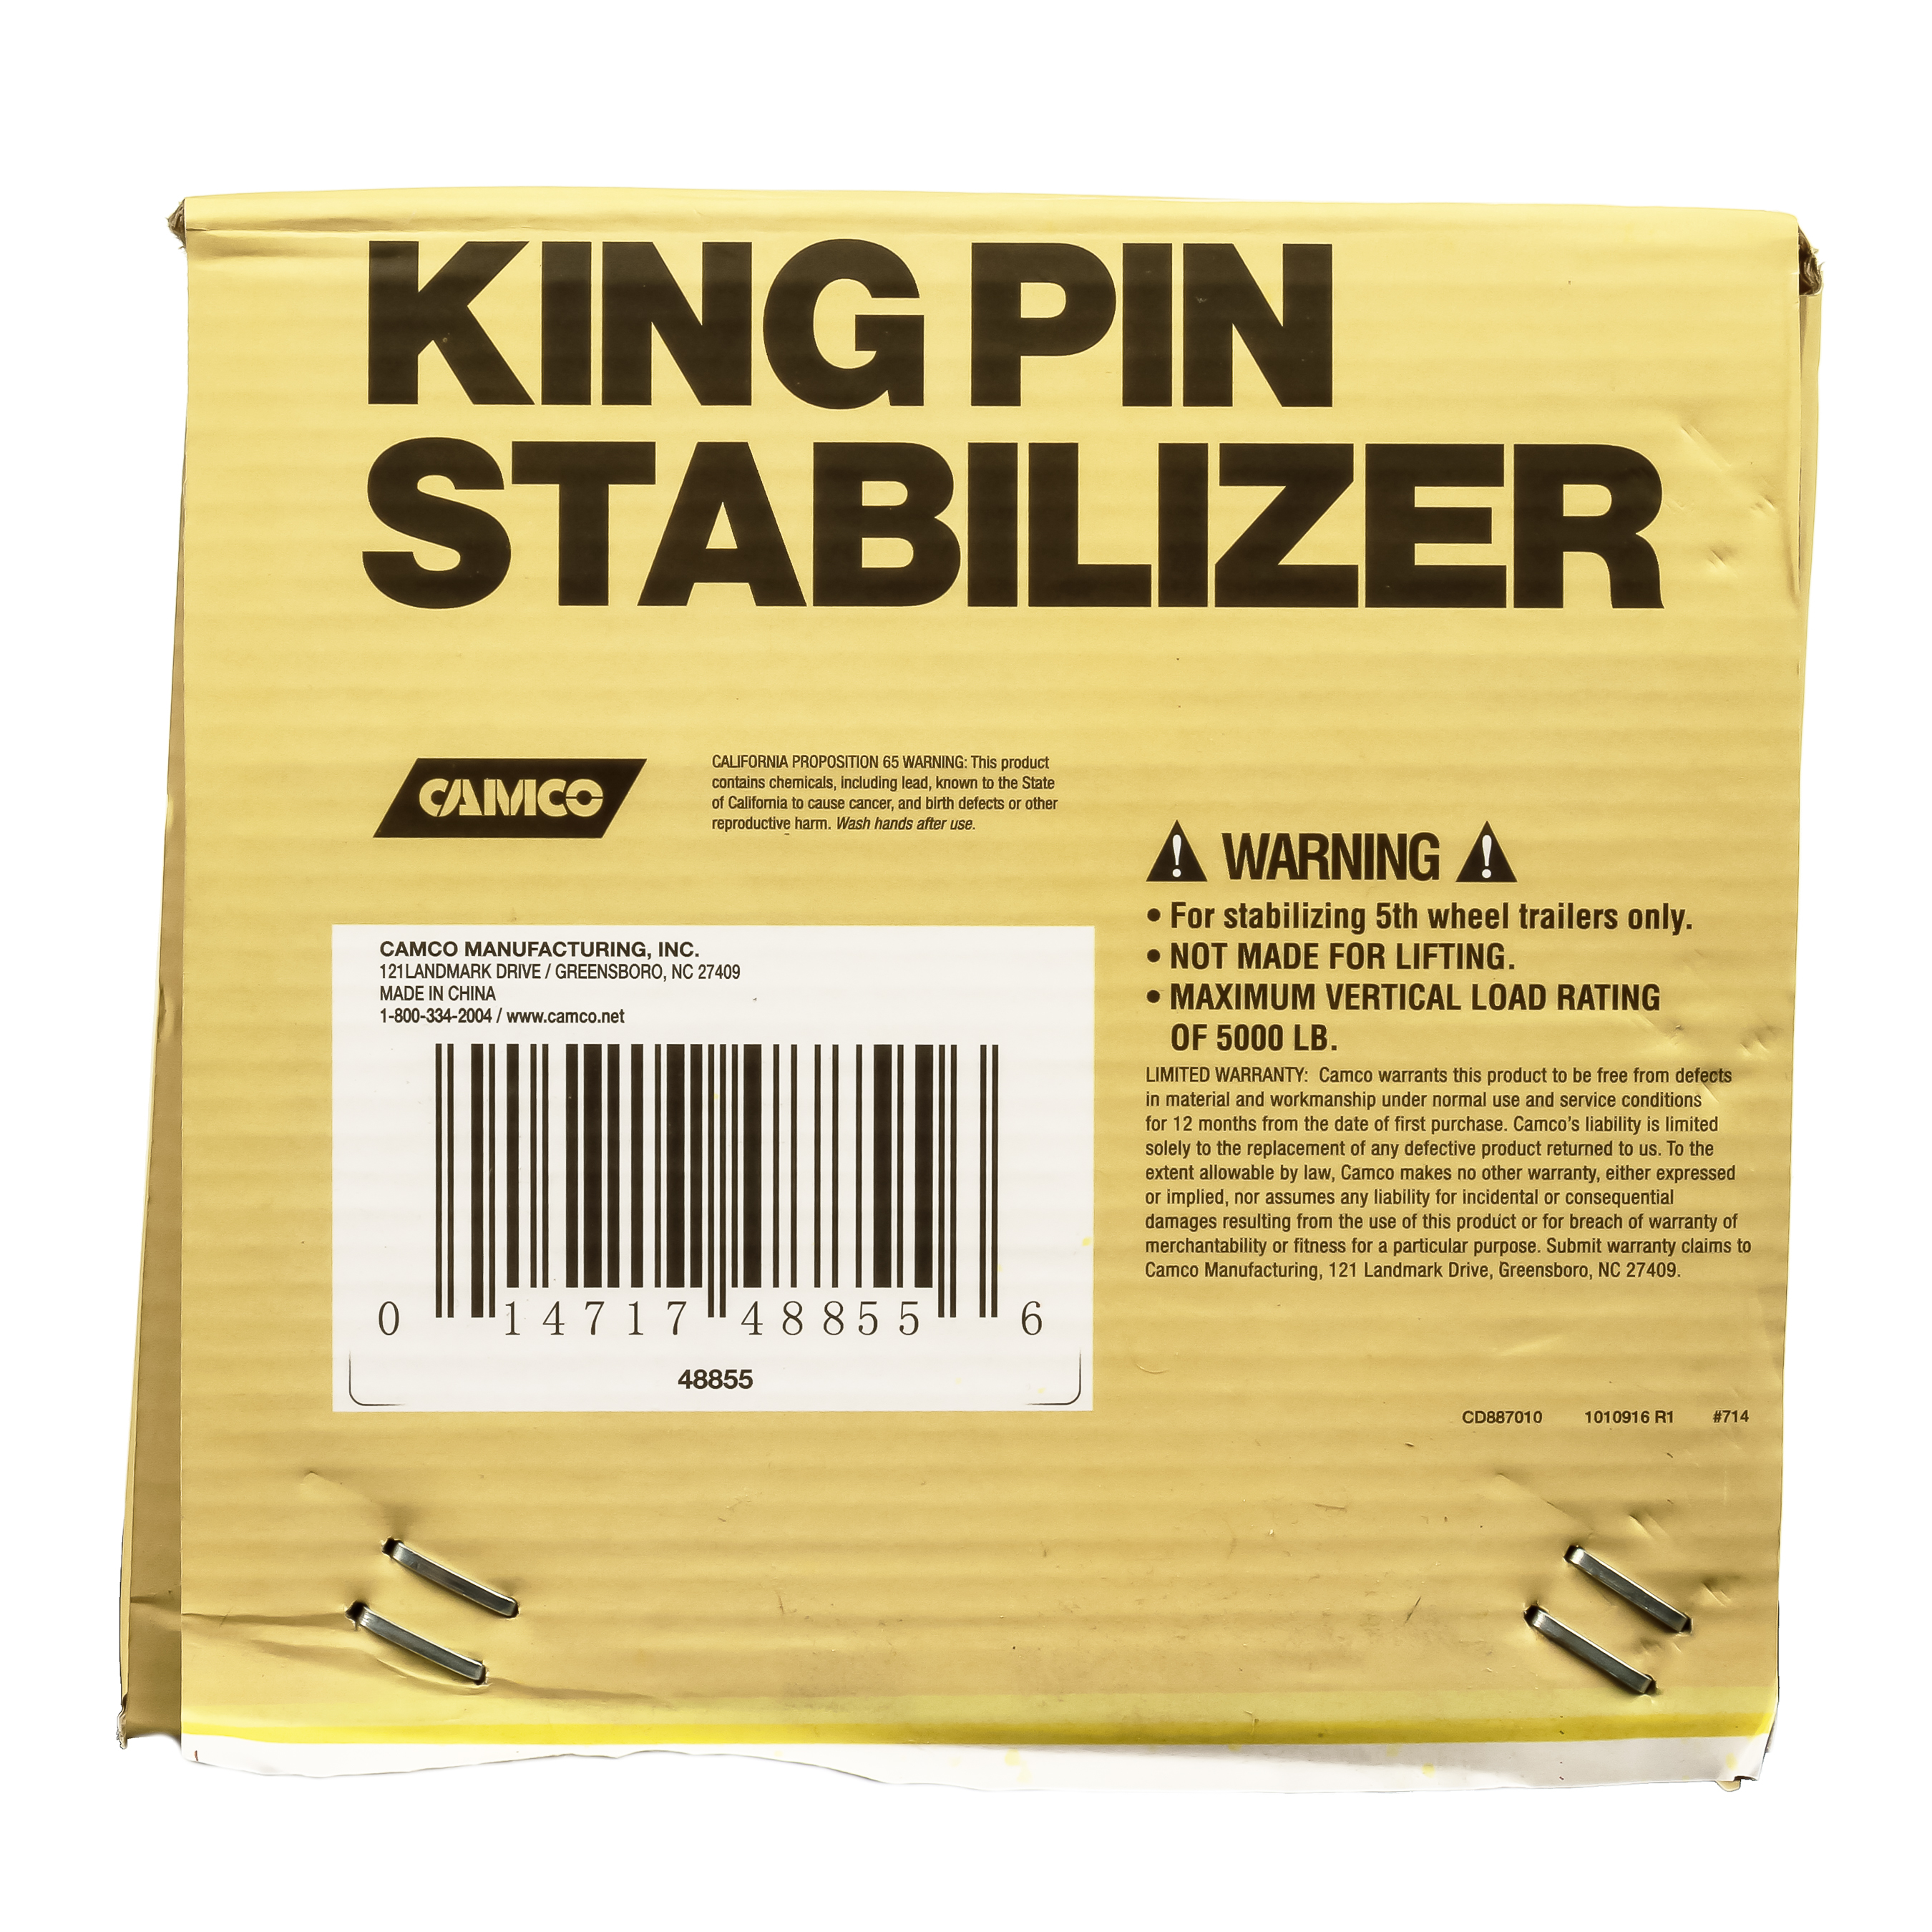 48855 Camco Fifth Wheel King Pin Stabilizer Jack Stand Use To Stabilize Fifth Wheel Trailer While Parked